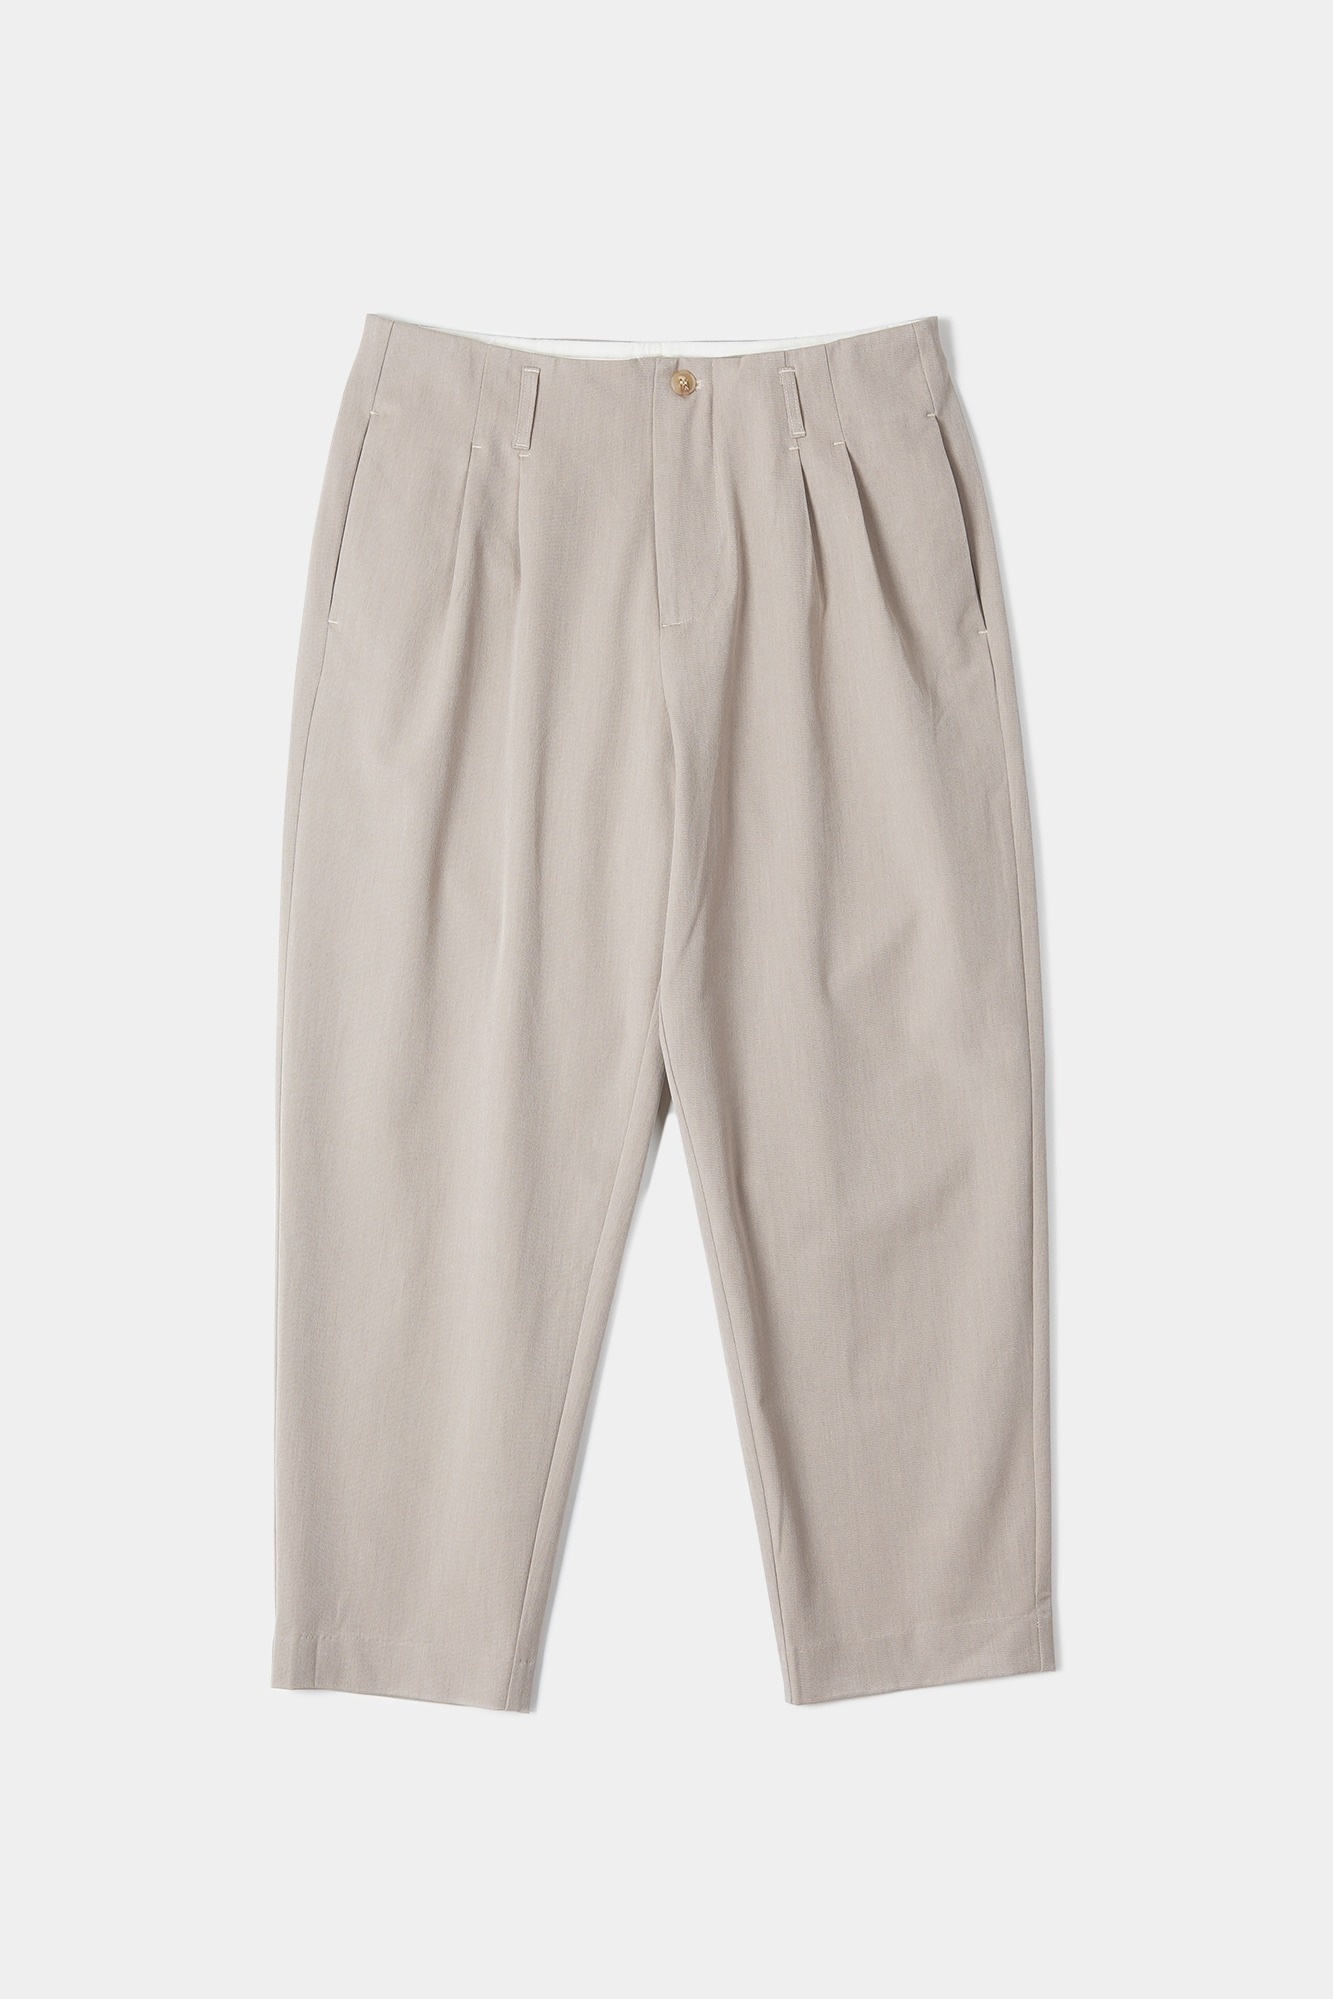 "OOPARTS Carrot-fit cropped pants ""Latte"""